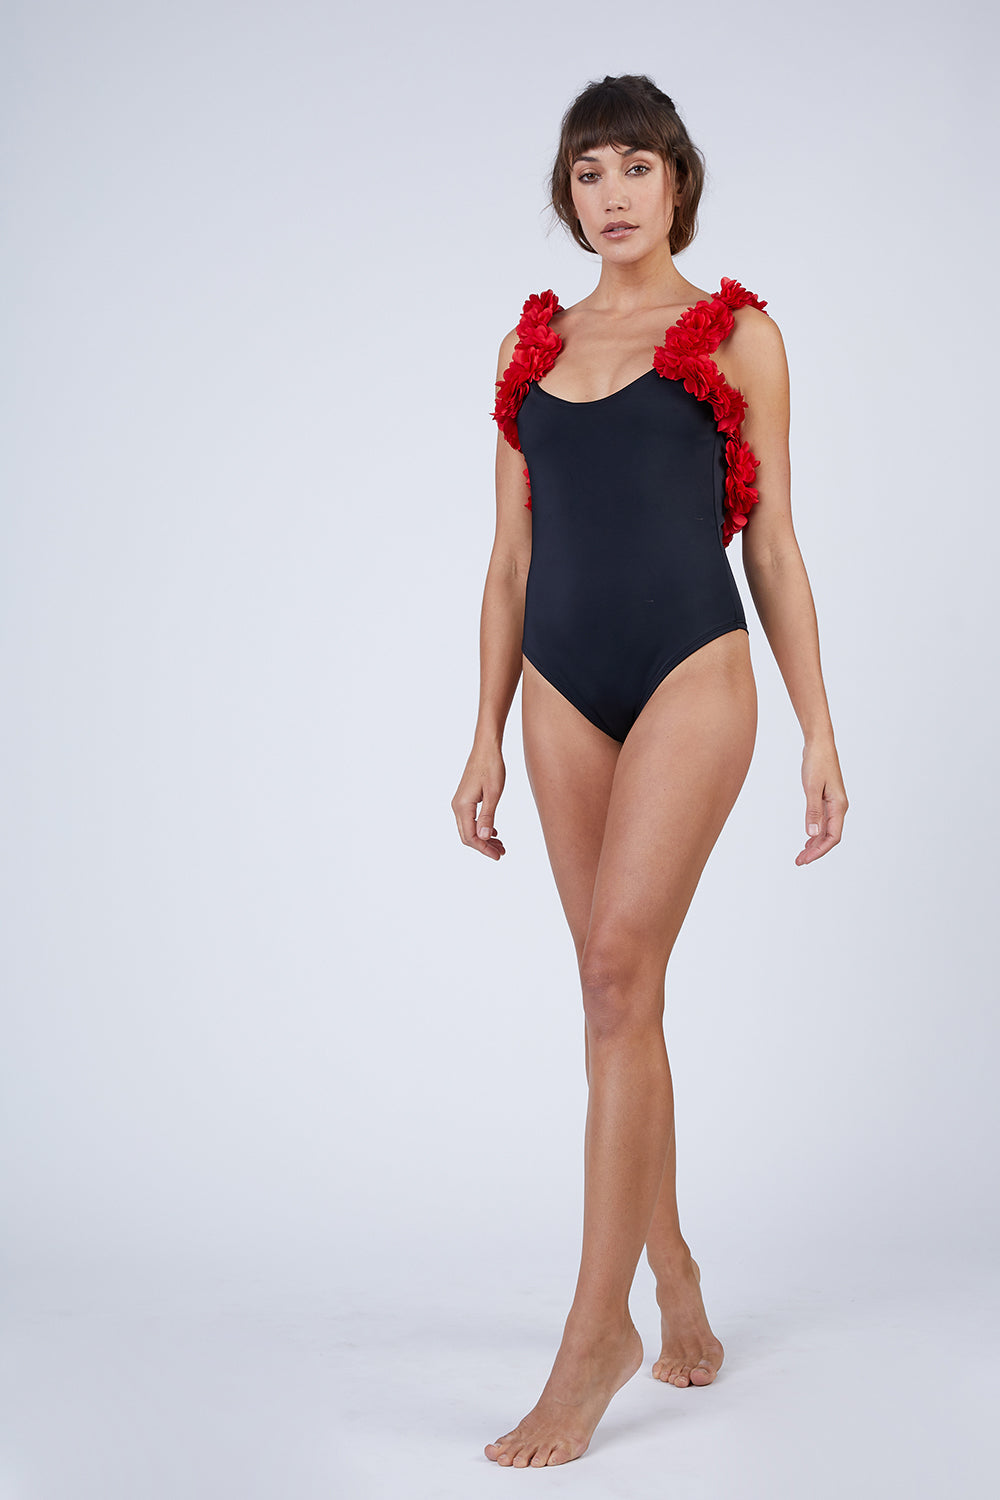 82f368e283 CANDY SWIMWEAR Floribean Flower Trim One Piece Swimsuit - Black/Red -  undefined undefined ...